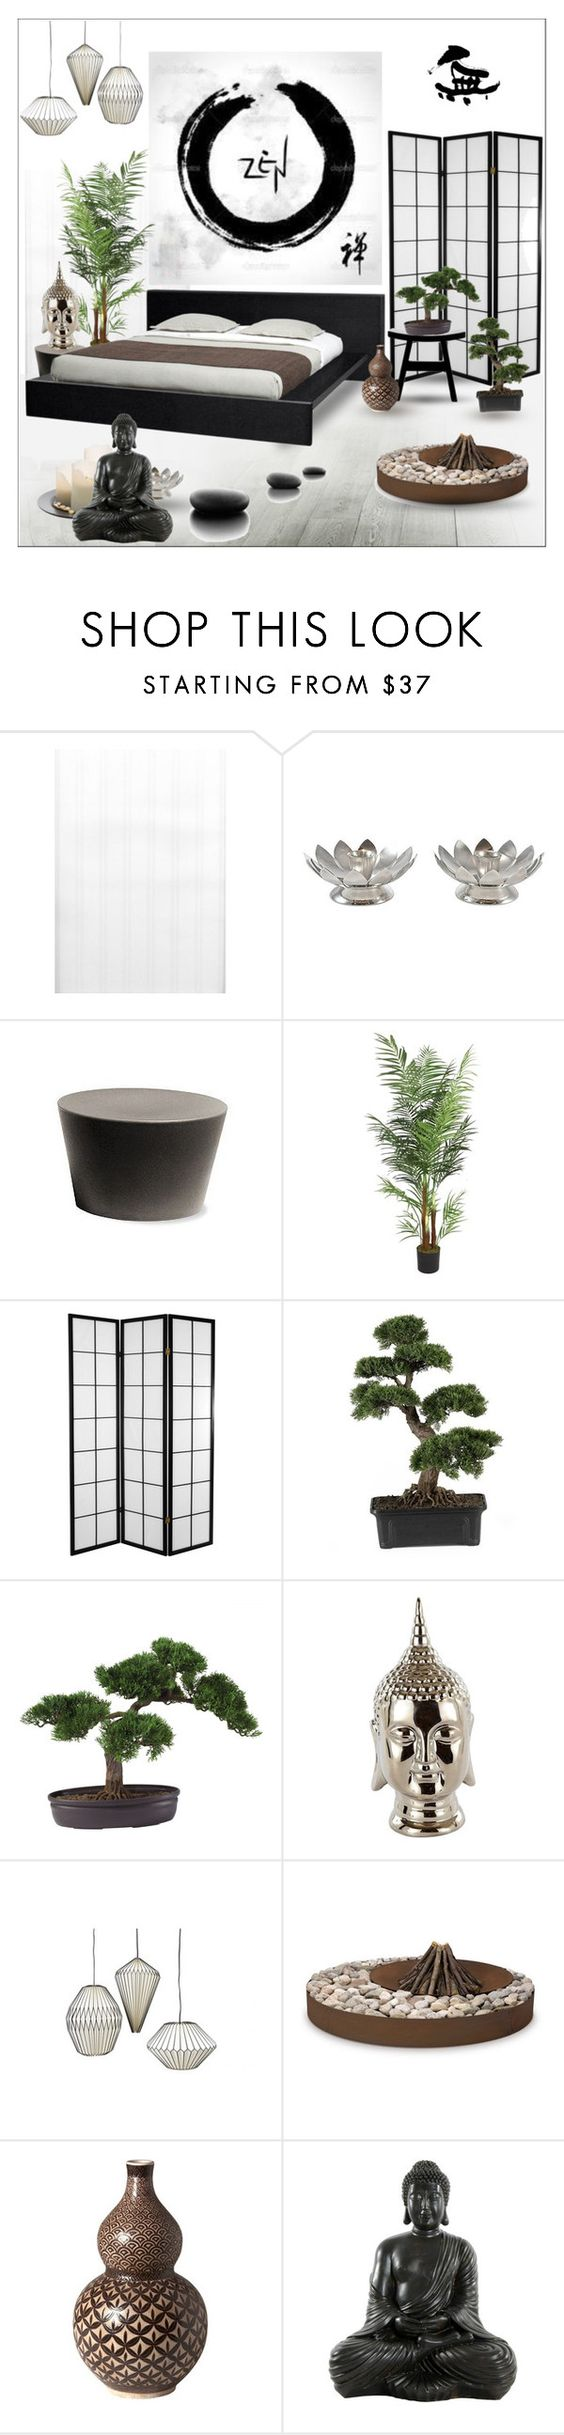 Zen Bedroom By Szaboesz Liked On Polyvore Featuring